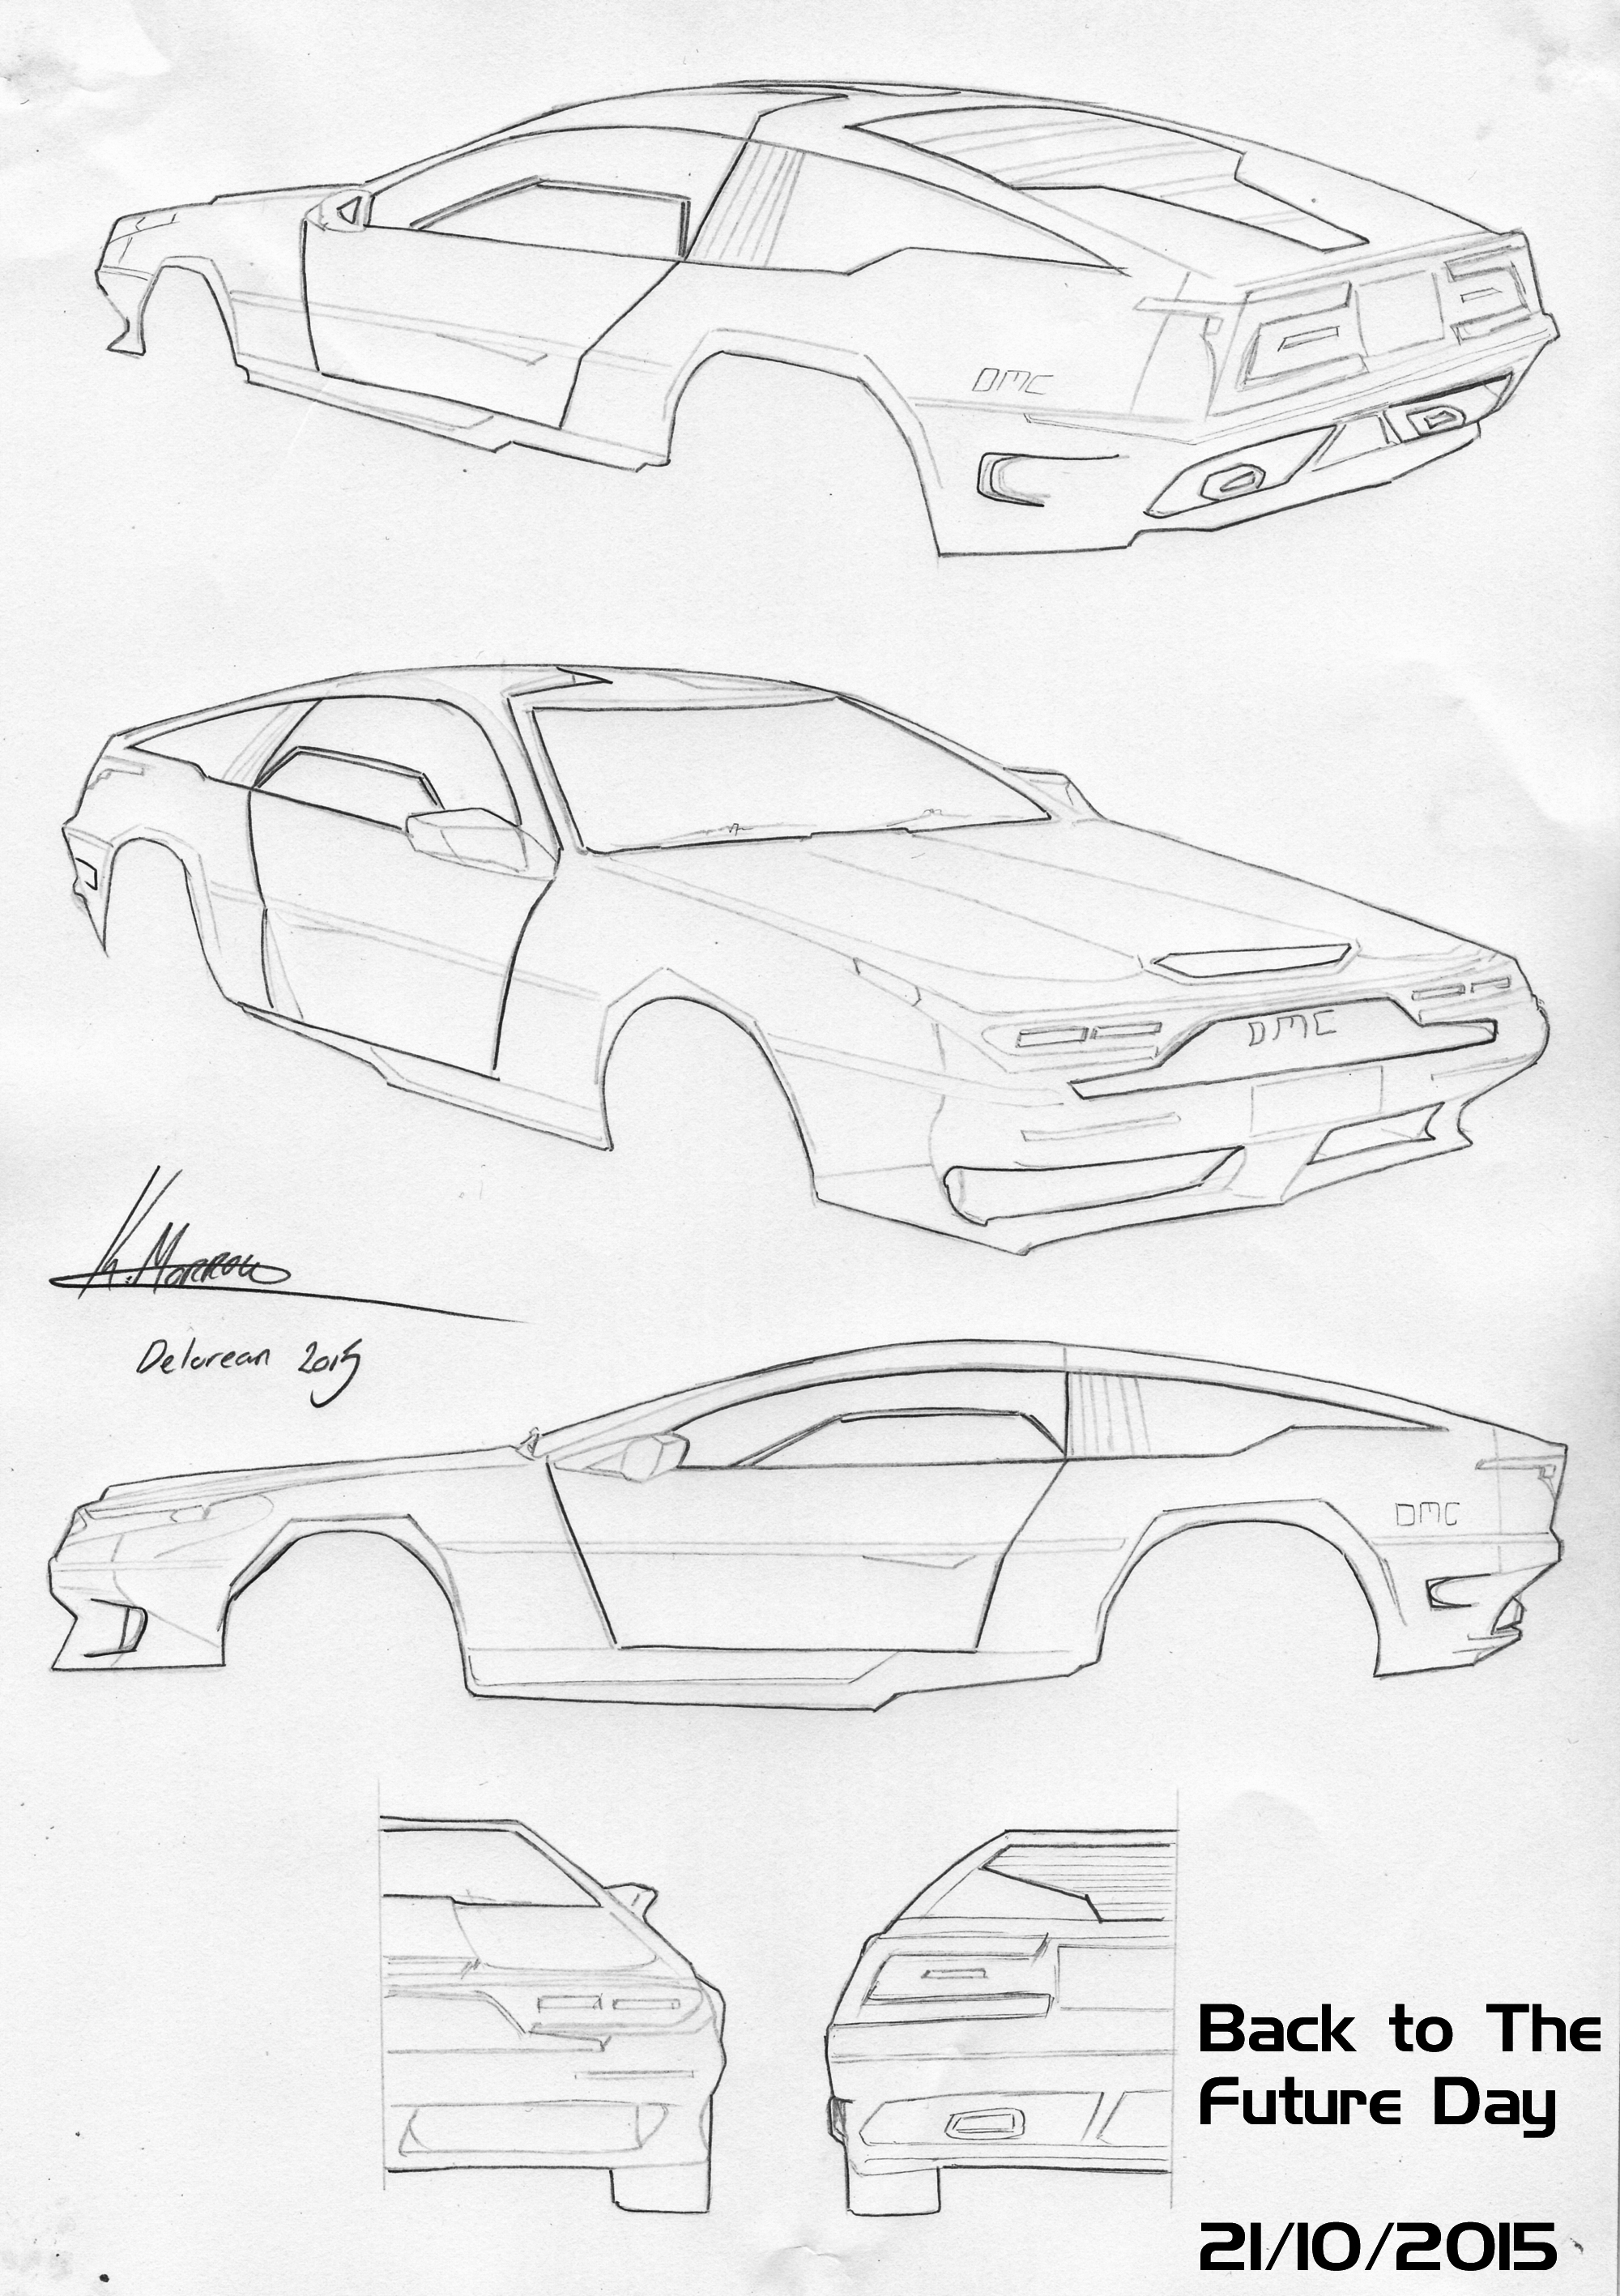 back to the future day delorean car design 2015 weasyl Concept Cars Found in Junkyard back to the future day delorean car design 2015